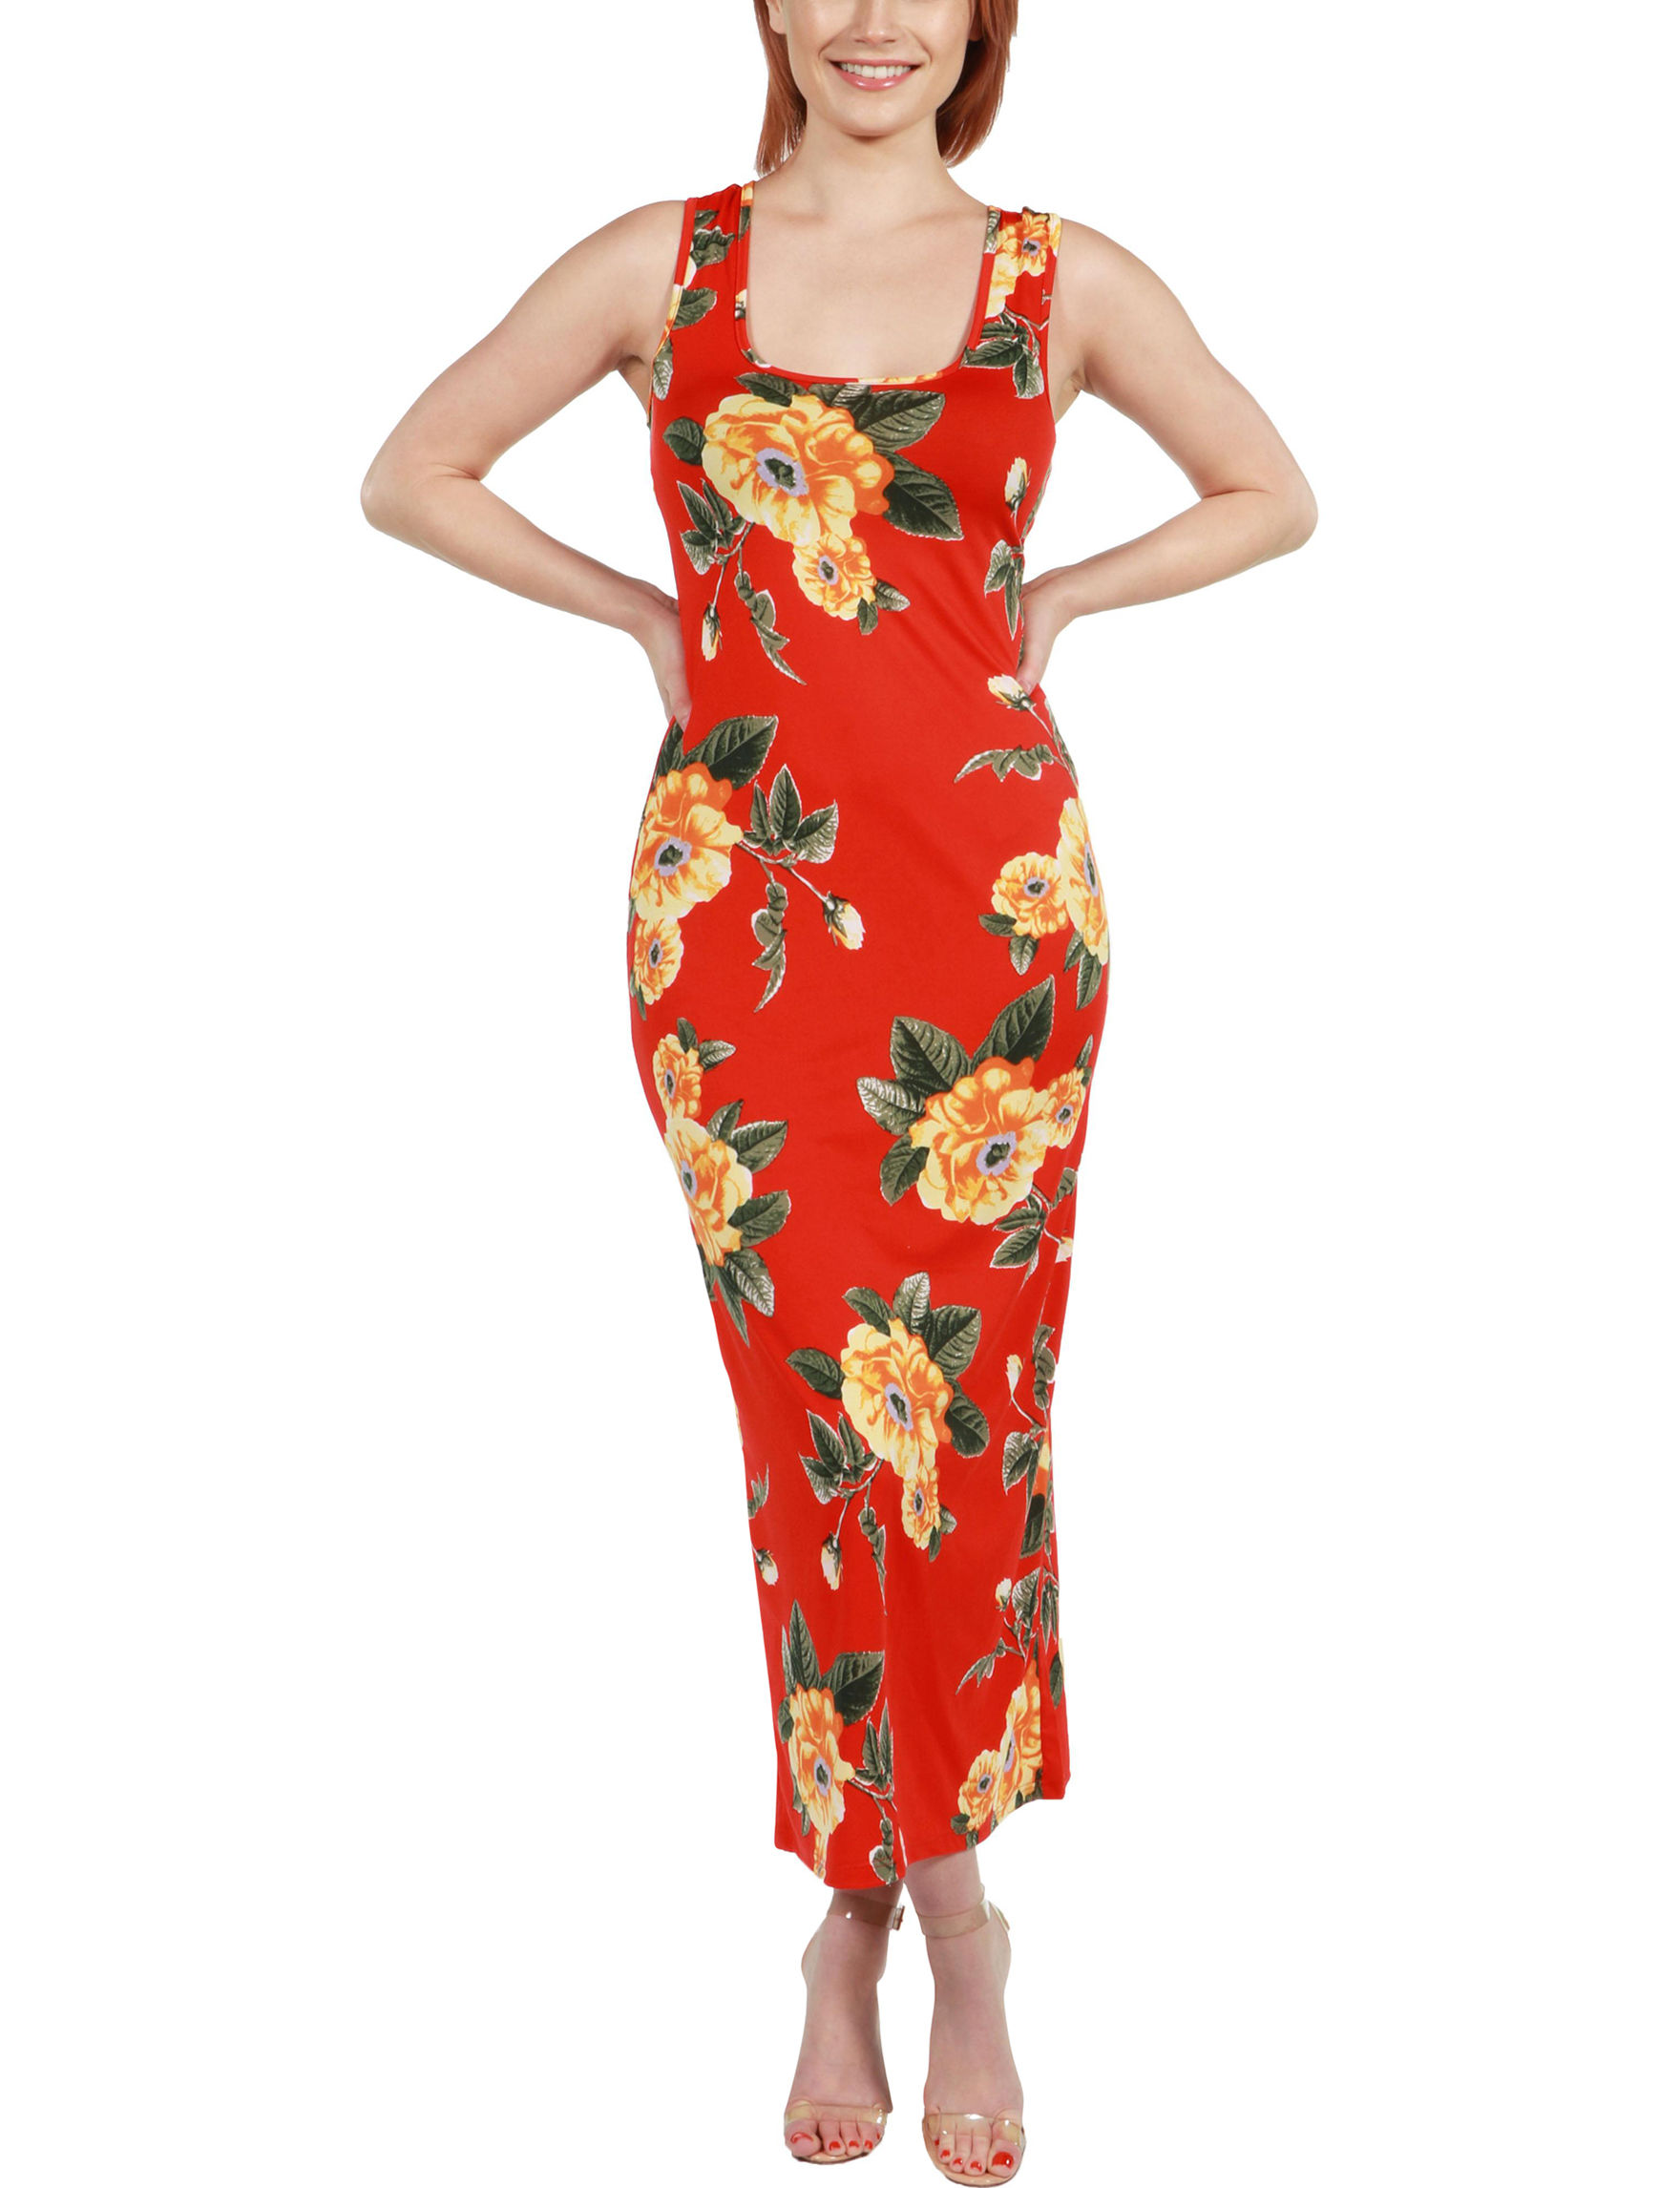 24Seven Comfort Apparel Red Multi Everyday & Casual Sundresses